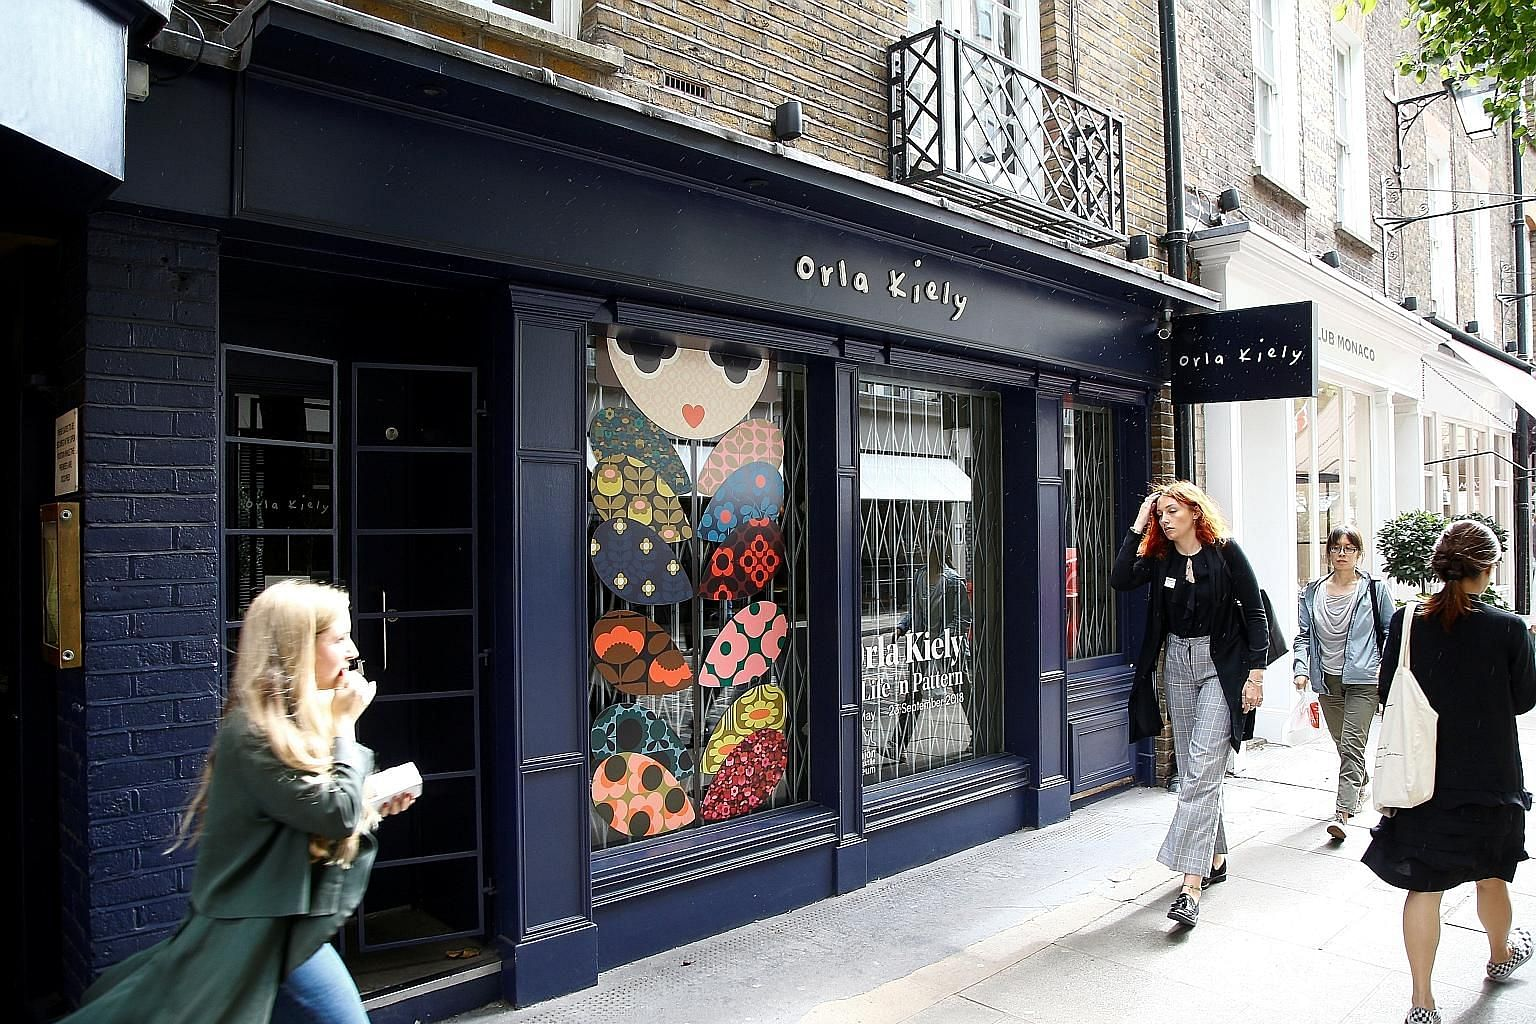 Fashion label Orla Kiely, known for its geometric prints (above), has closed its London store (left).